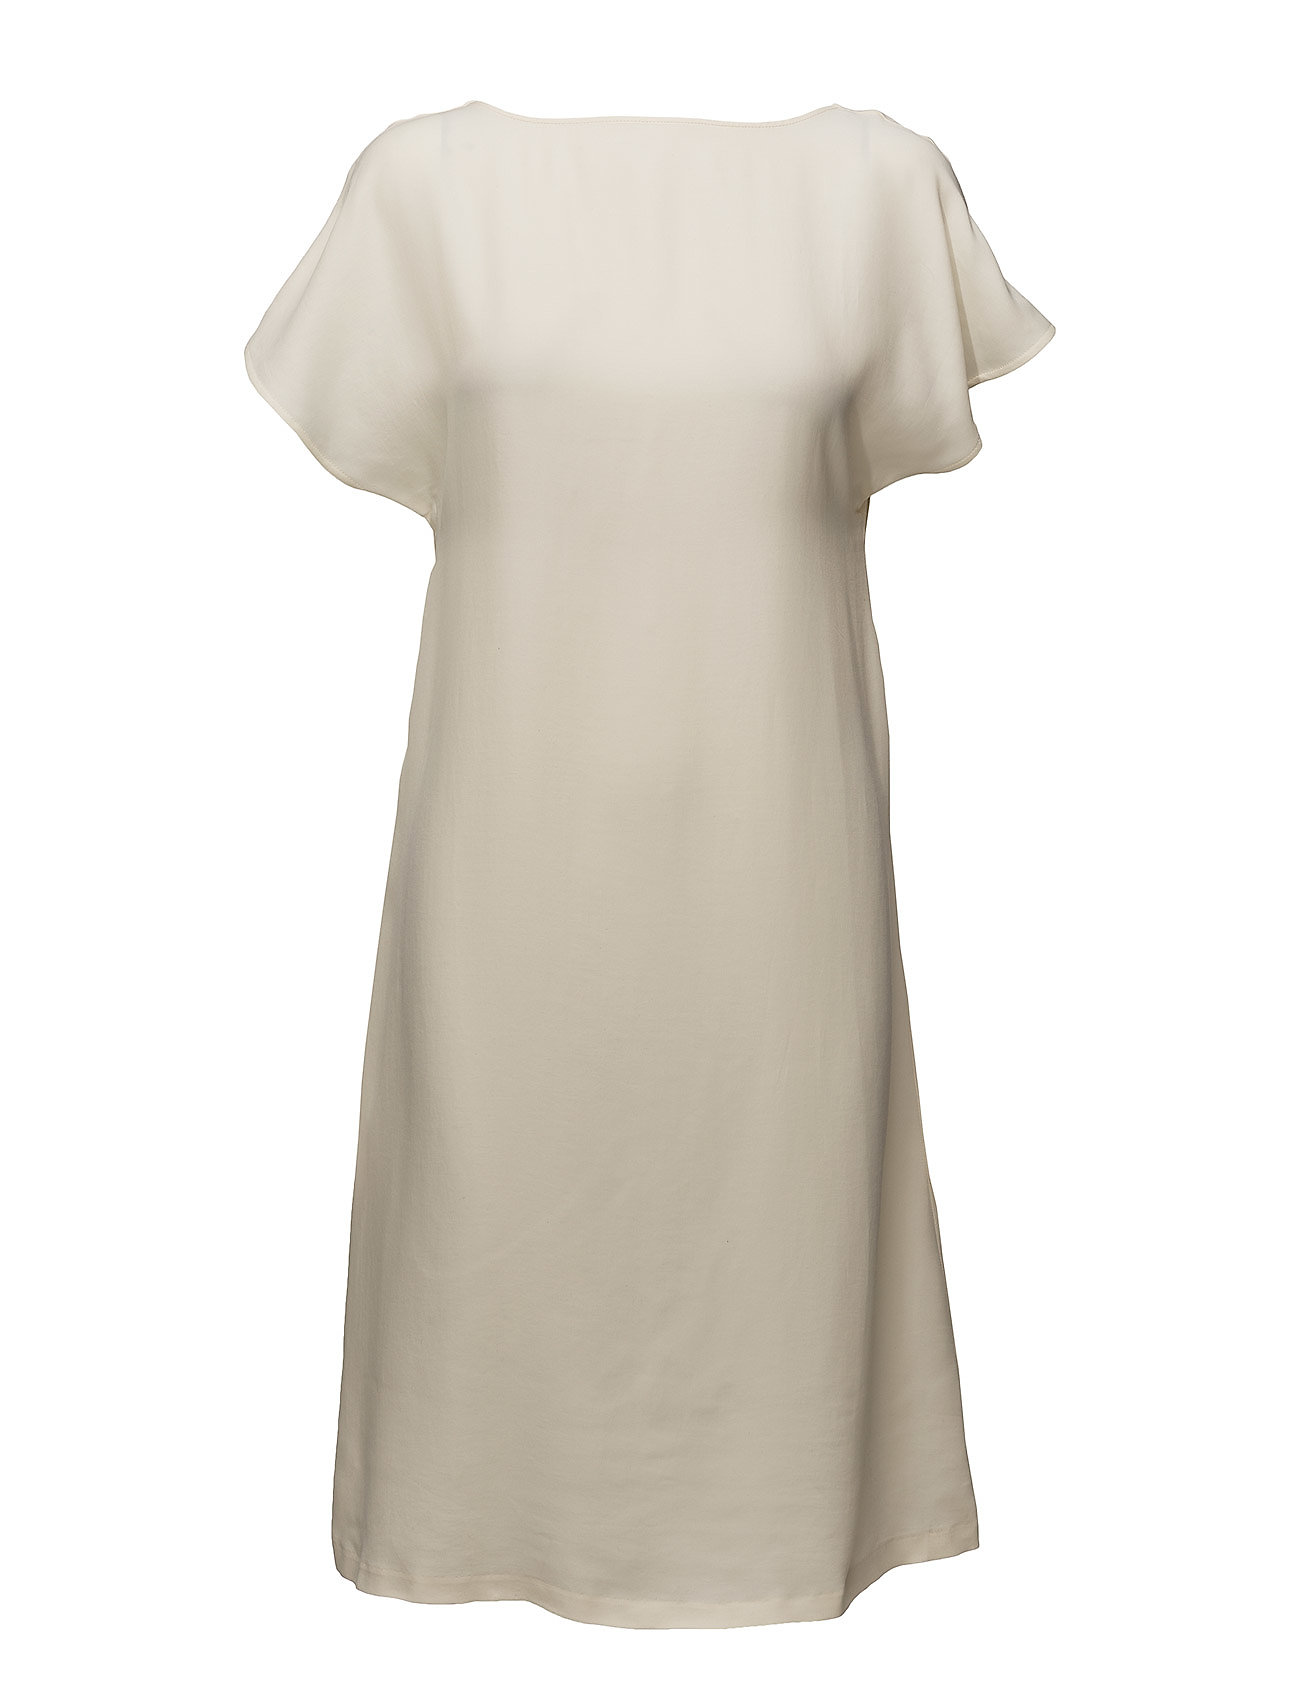 Morris Lady Deauville Dress - OFF WHITE